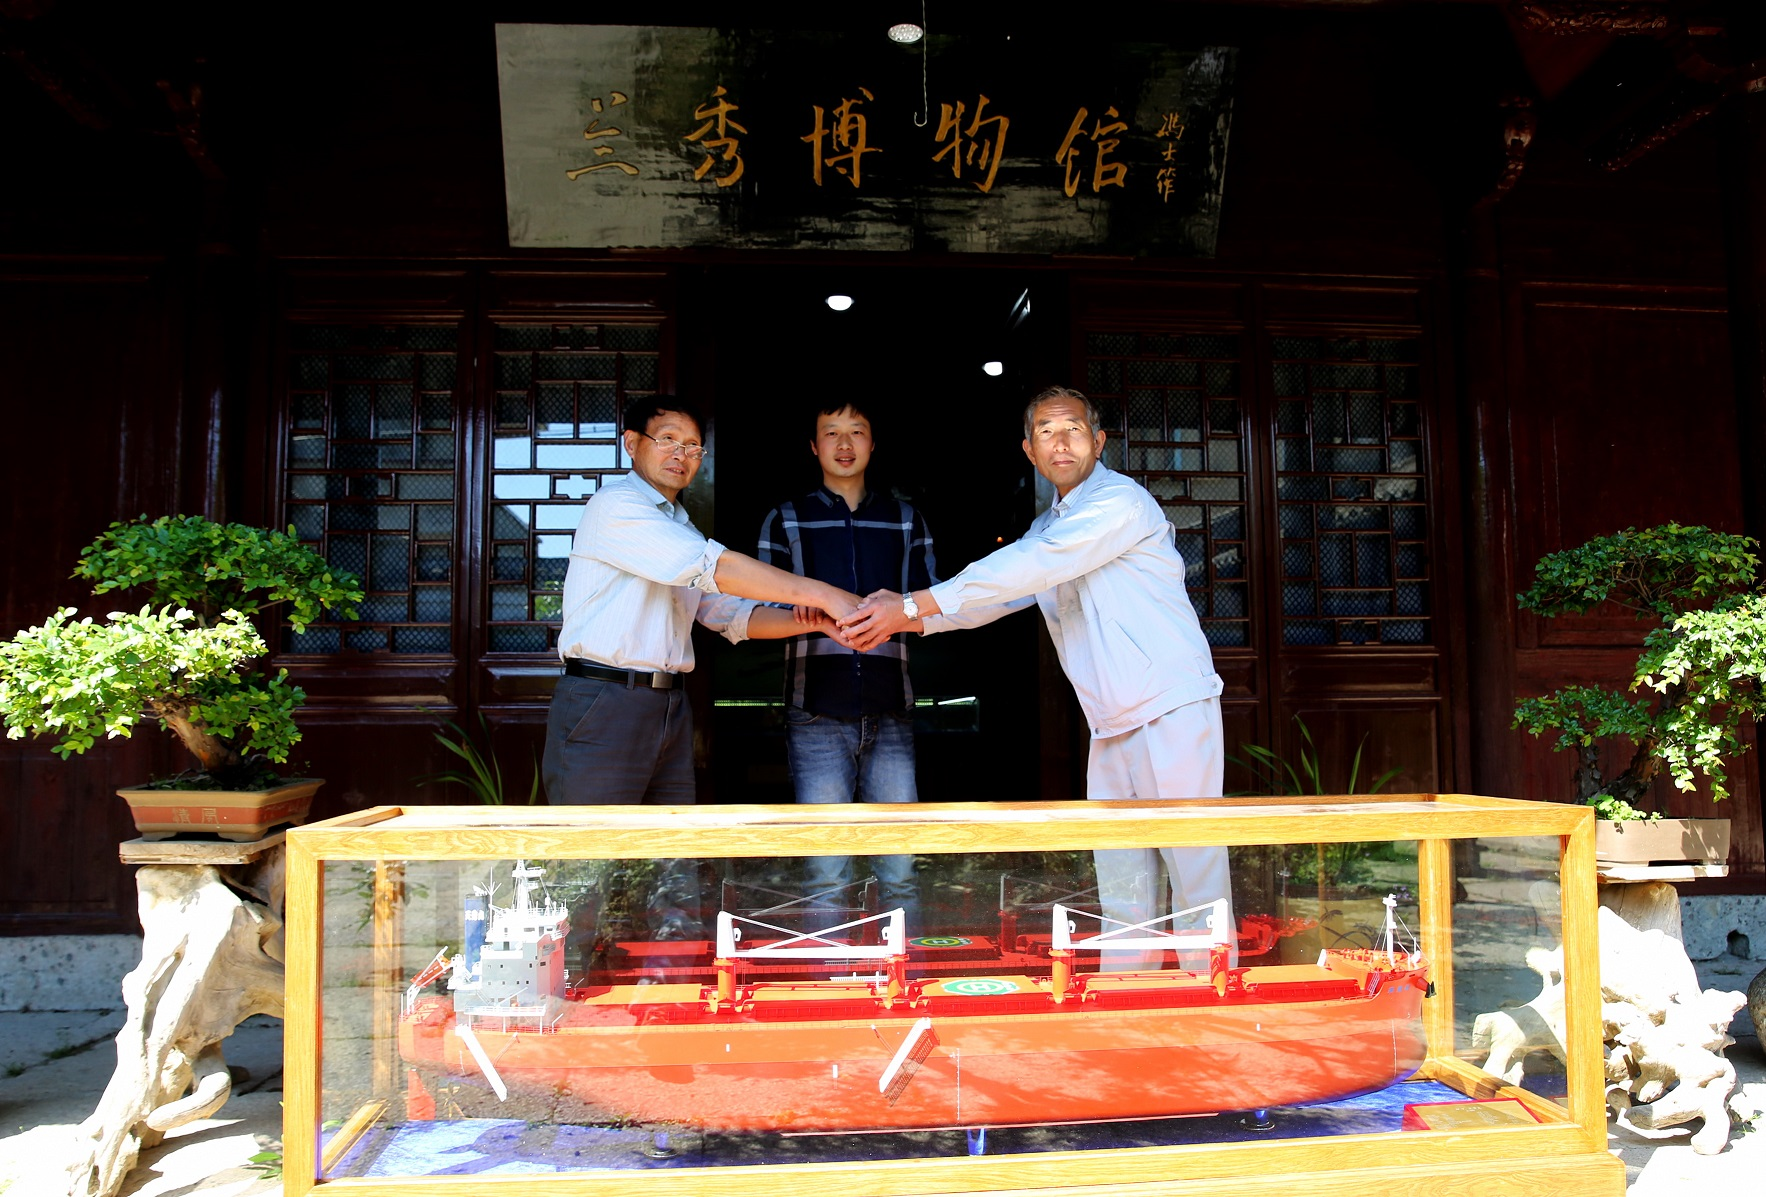 A model 58,000-ton bulk carrier ship presented to Lanxiu Museum on Xiushan Island of Zhoushan City in Zhejiang Province - Donated by TSUNEISHI GROUP (ZHOUSHAN) SHIPBUILDING Inc.